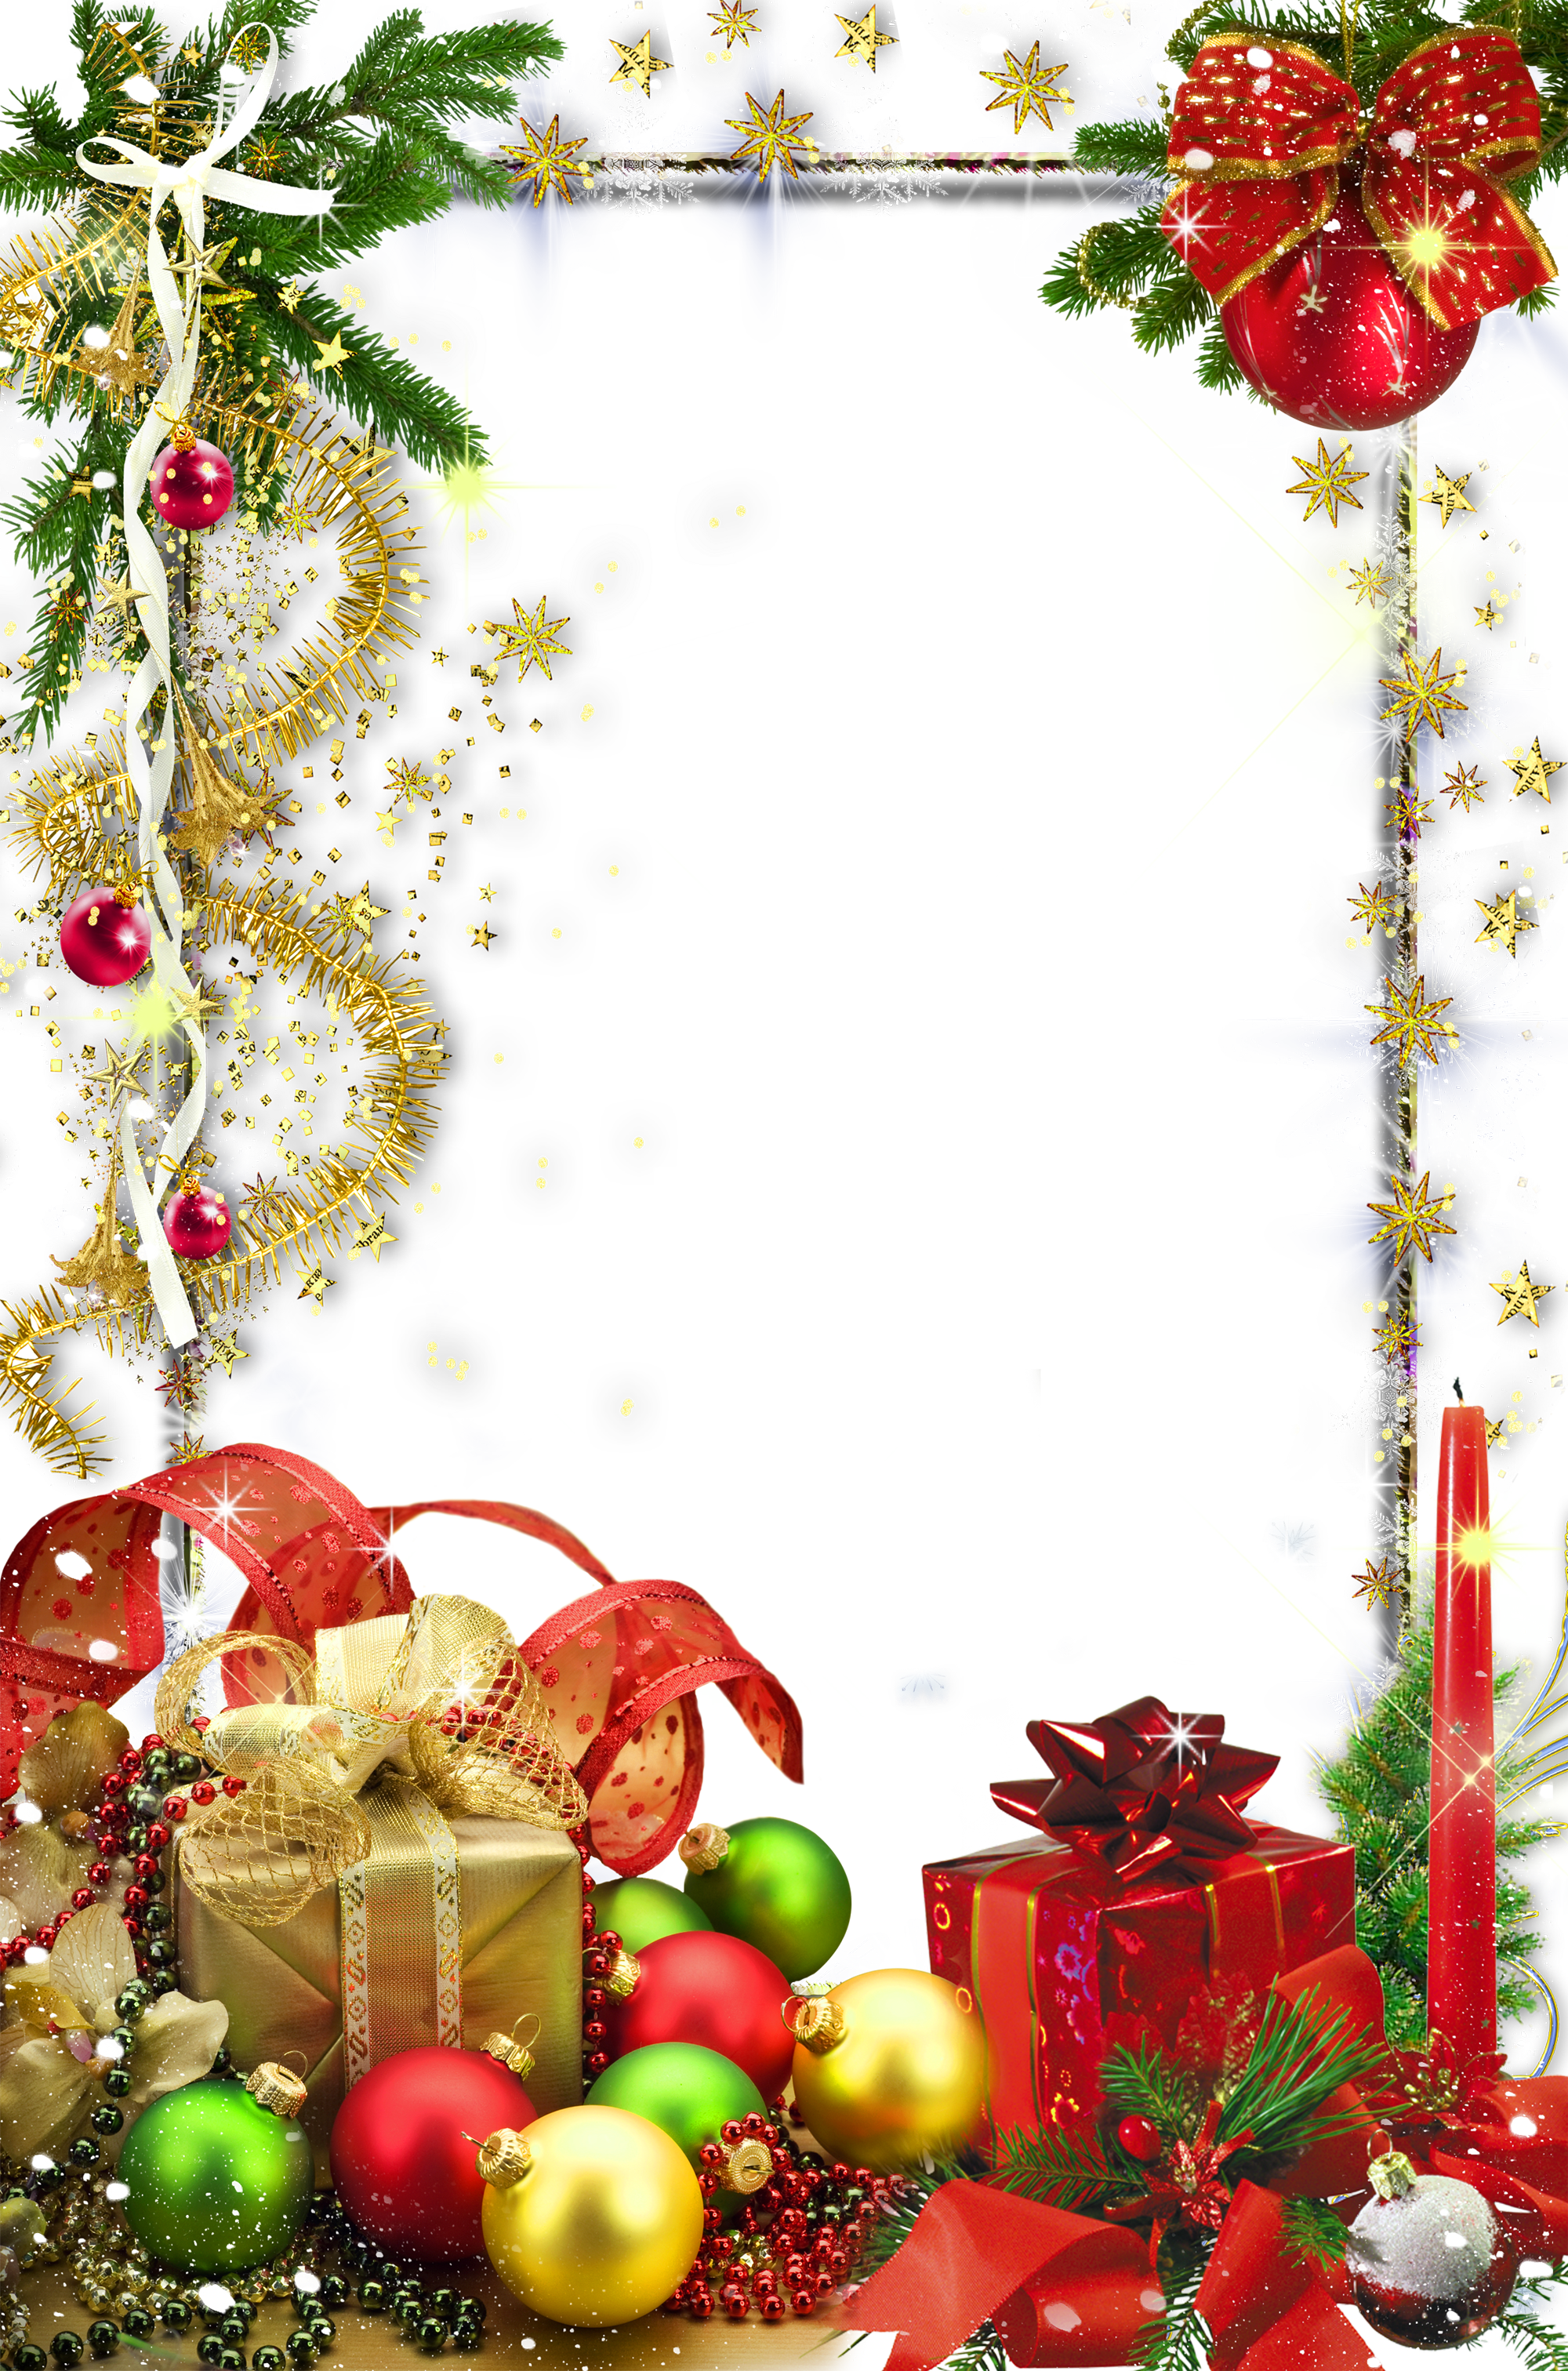 Christmas holiday clipart graphic free Transparent Christmas Holiday Photo Frame | Christmas❆ClipArt, PNG ... graphic free